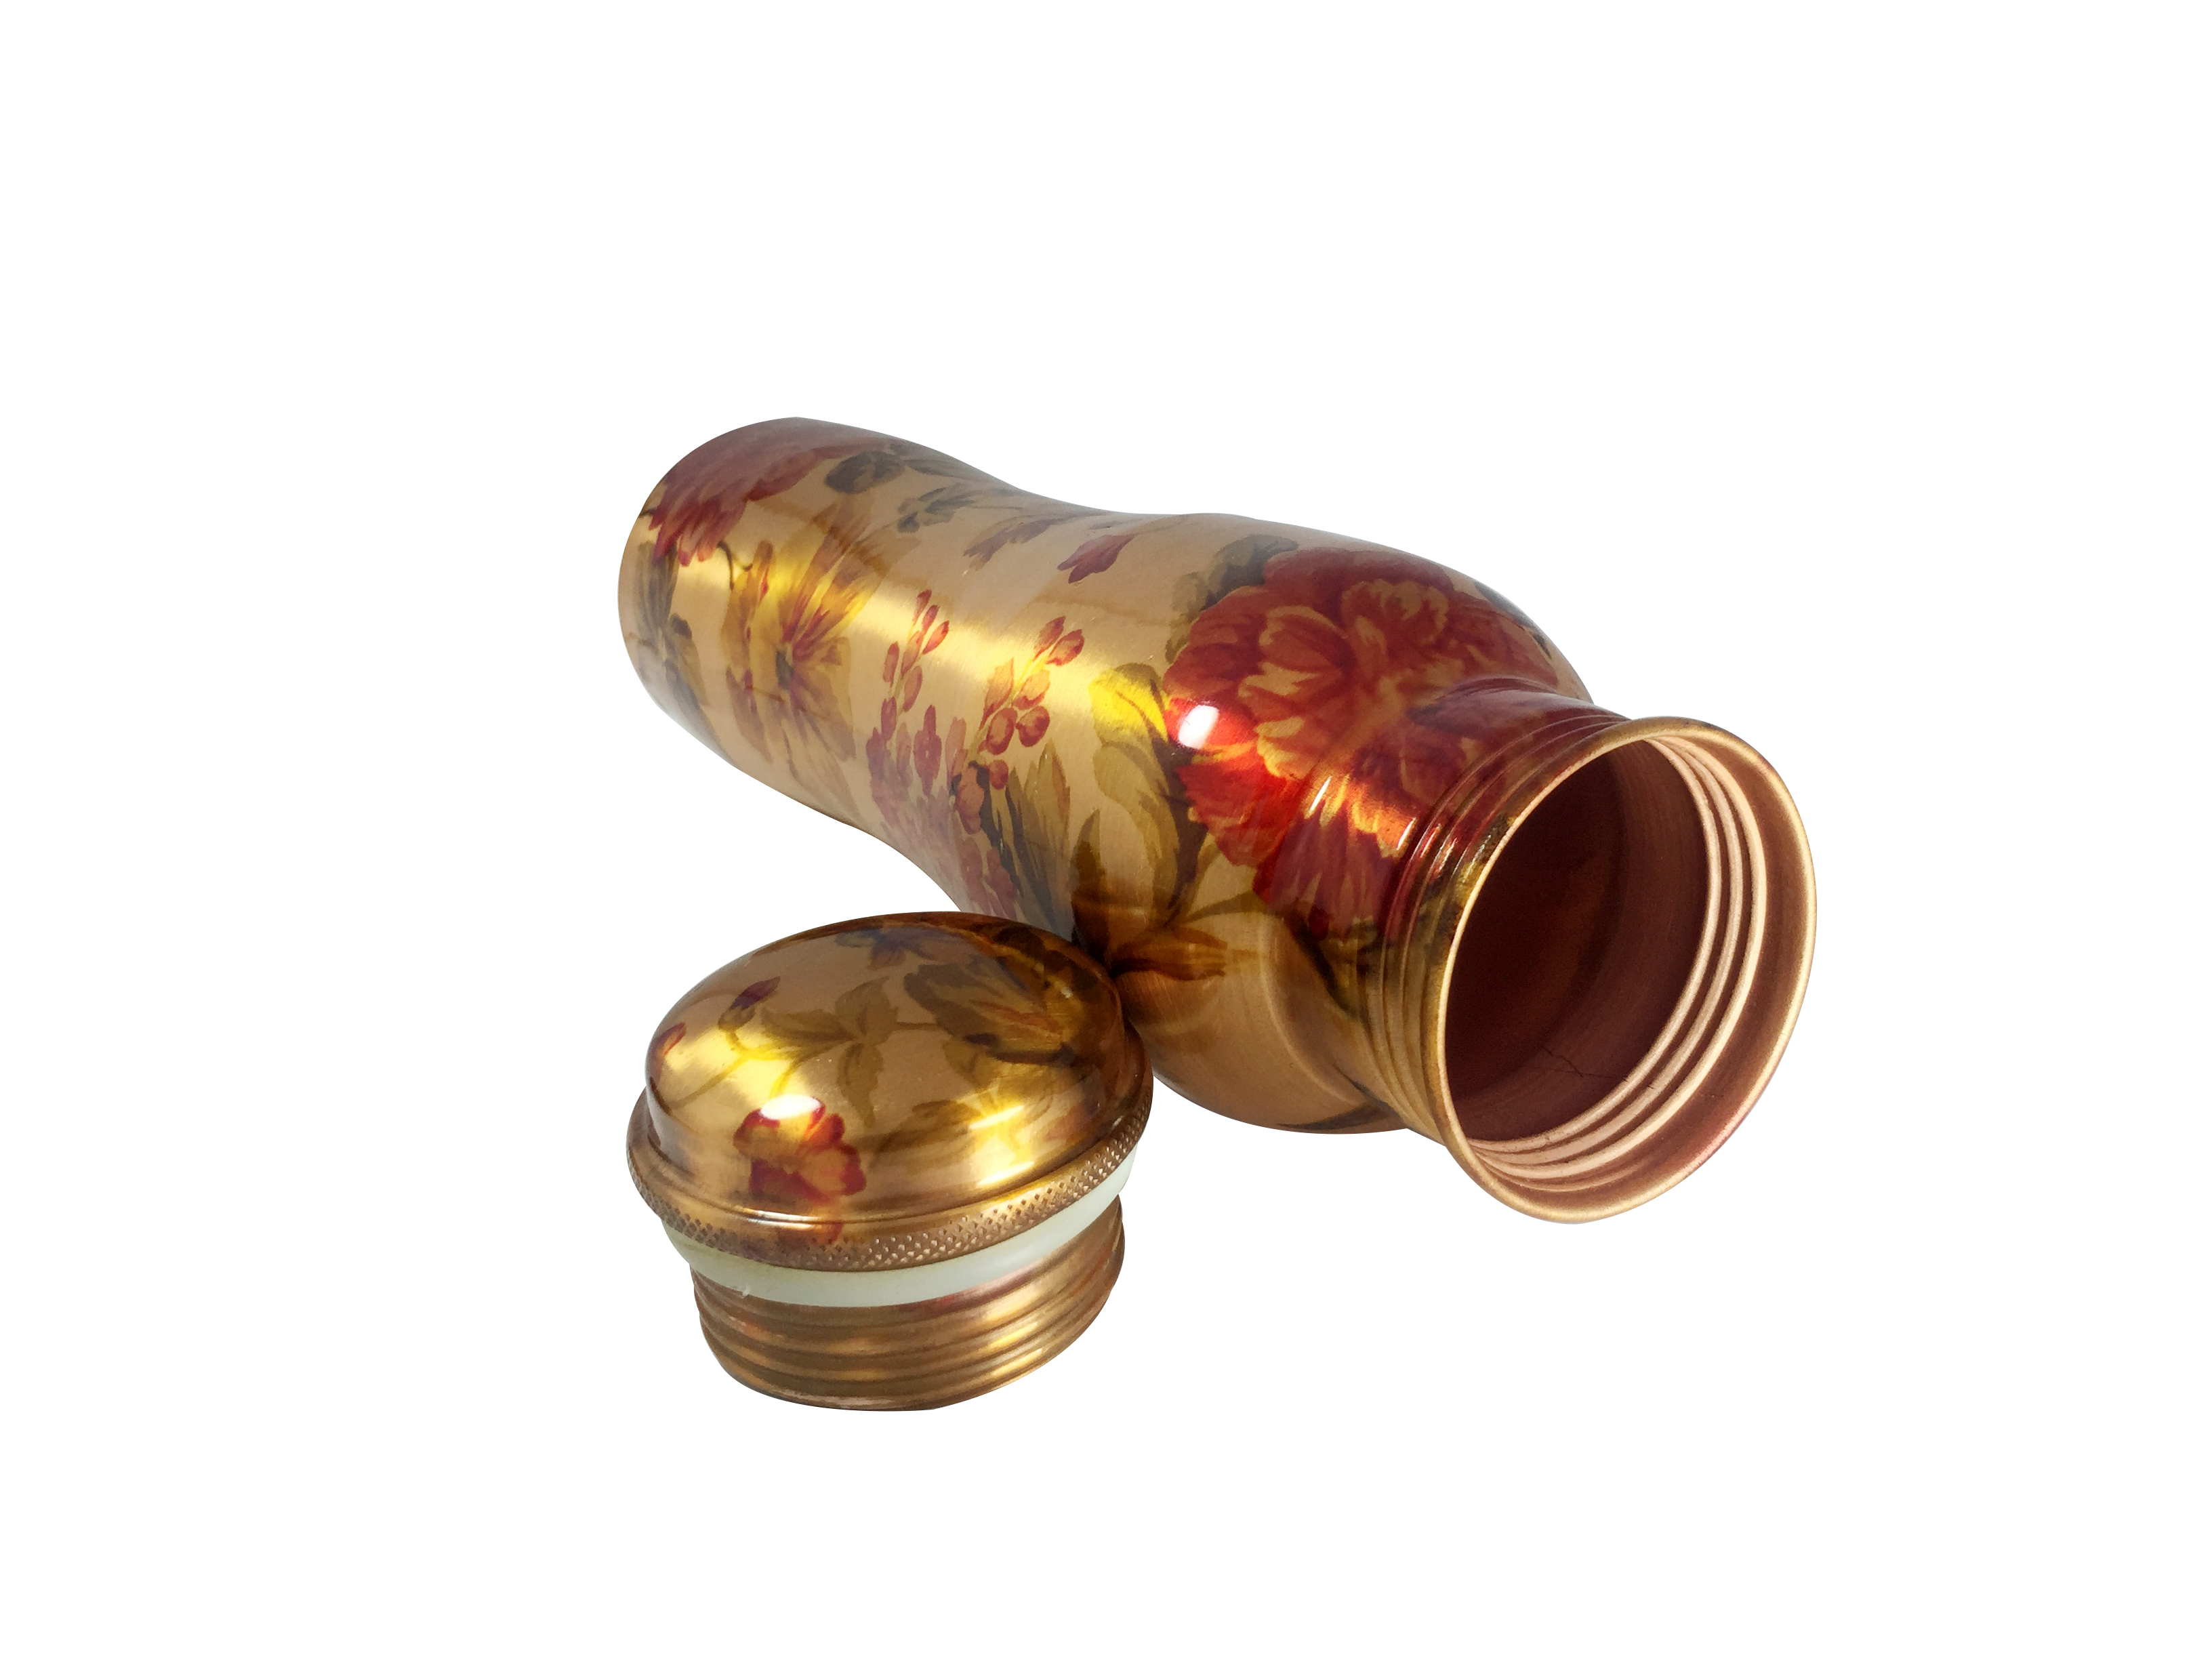 1 Sipper 750Ml and 1 Copper Bottle 1000Ml - sports sipper 750ML Curved Leaf Copper Bottle 1000ml